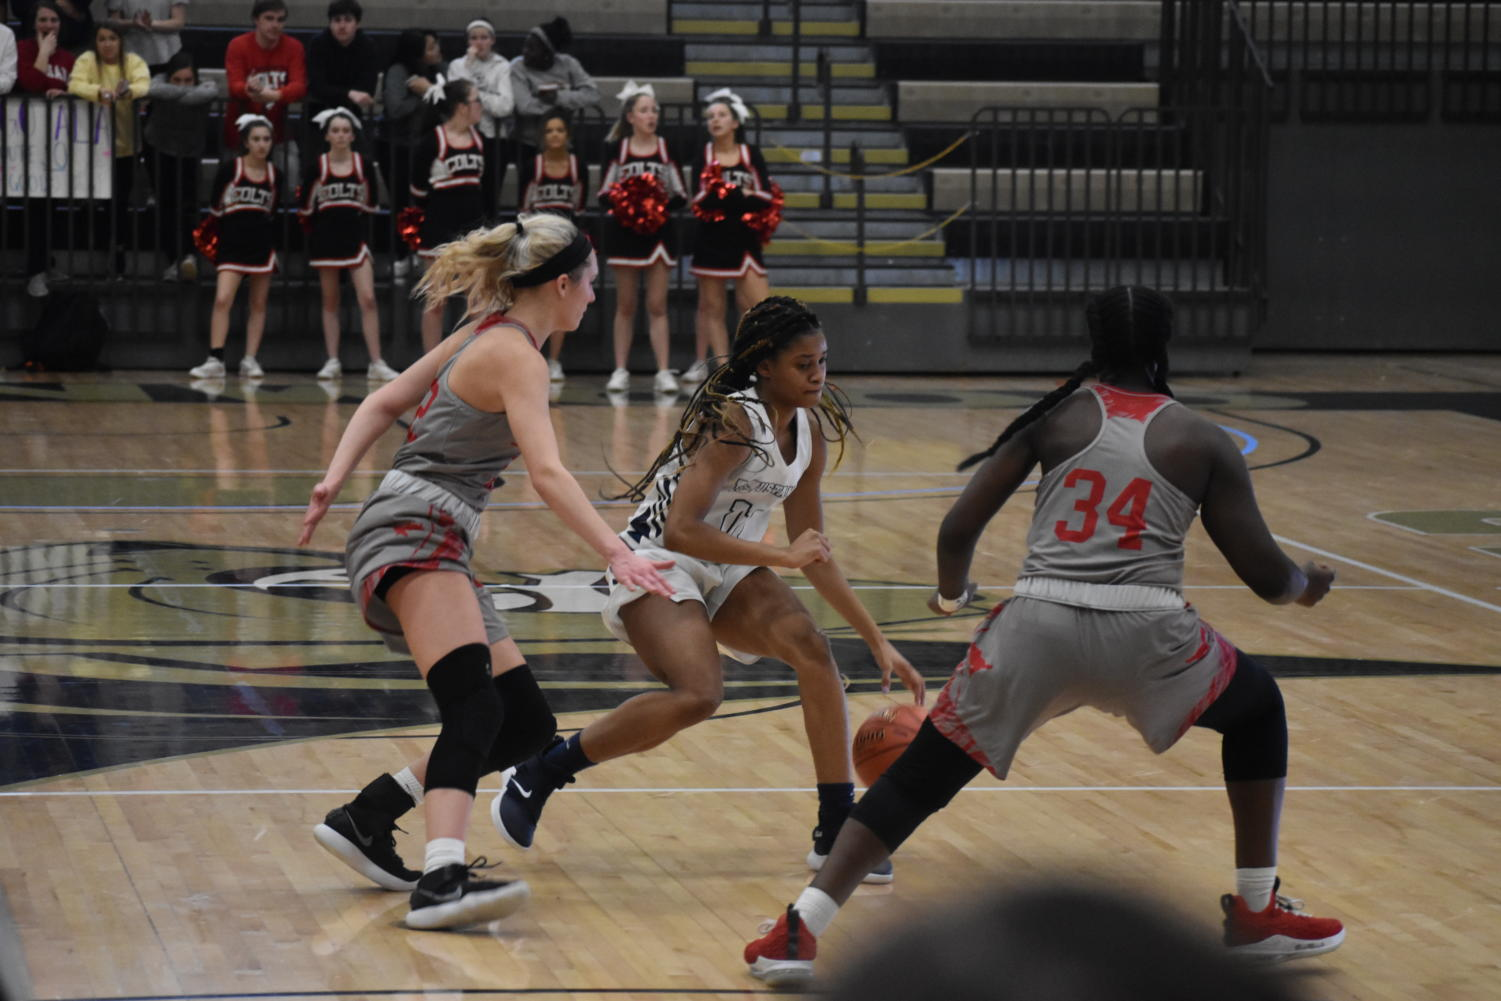 Autumn+Brown%2C+junior%2C+dribbles+down+the+court+as+she+is+guarded+by+two+Parkway+Central+players.+Despite+their+hustle%2C+MHS+lost+58-55+to+Parkway+Central.+%E2%80%9CWe+got+really+far+this+year+and+I+am+excited+to+see+what+we+do+next+year%2C%E2%80%9D+Brown+said.